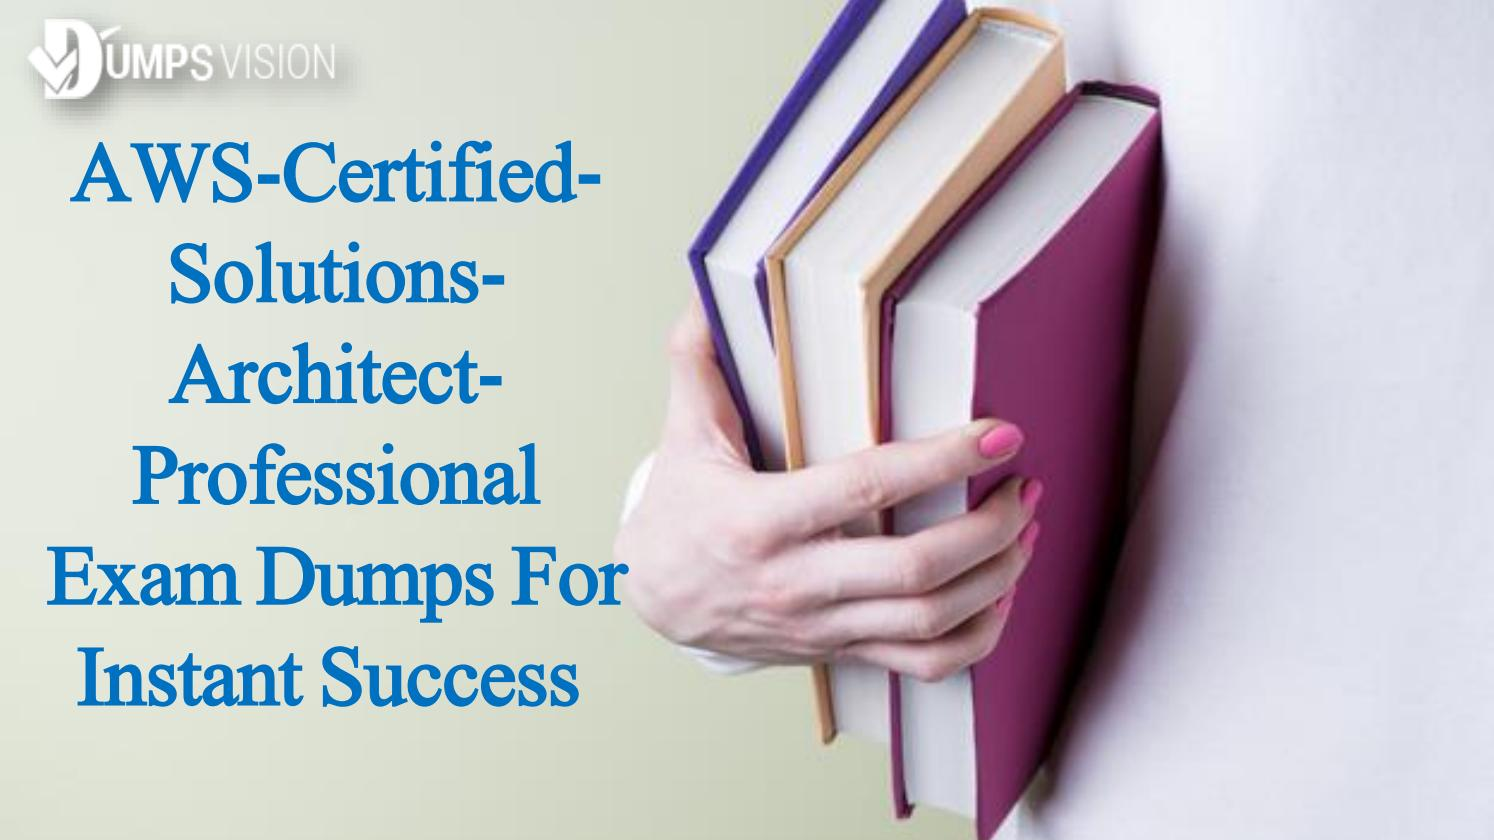 Amazon aws certified solutions architect professional test dumps amazon aws certified solutions architect professional test dumps exam questions for immediate succes by bryant anderson issuu 1betcityfo Images